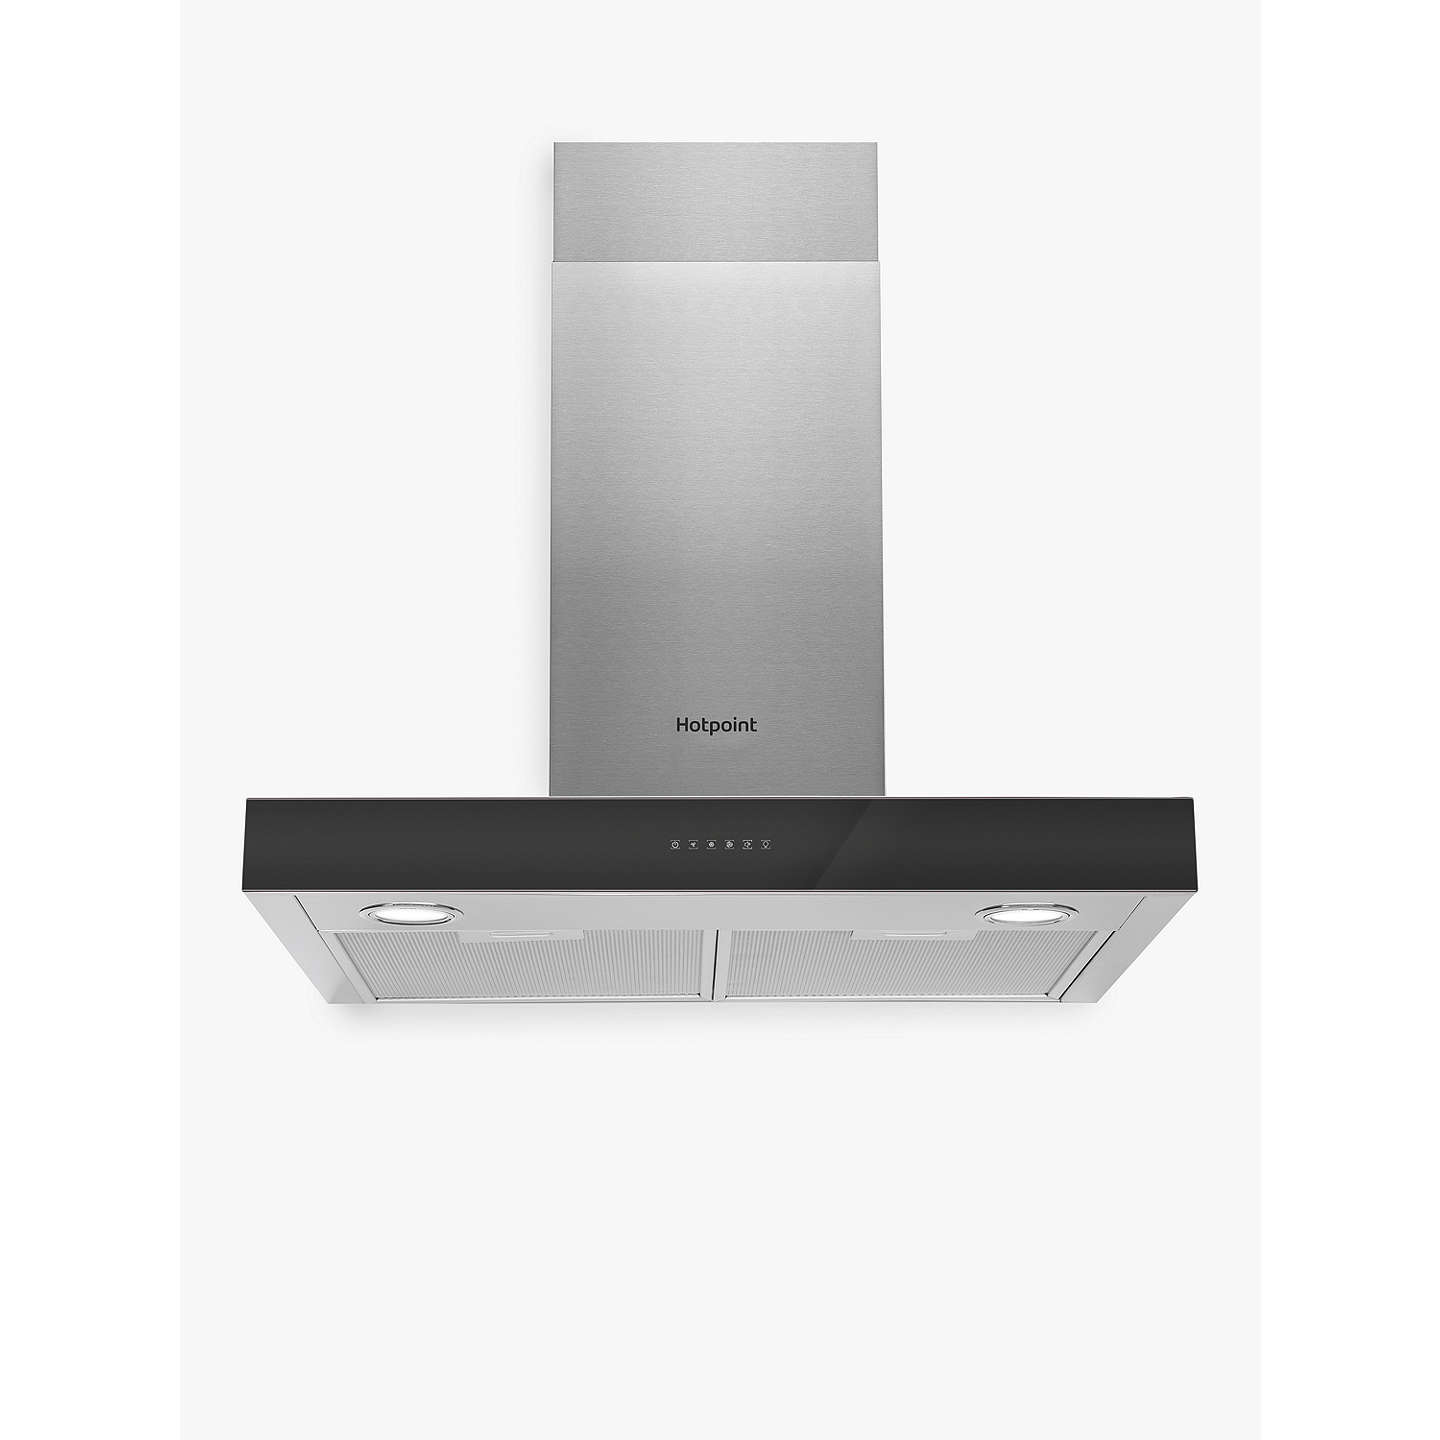 BuyHotpoint PHBS6.8FLTIX Chimney Cooker Hood, Stainless Steel Online at johnlewis.com